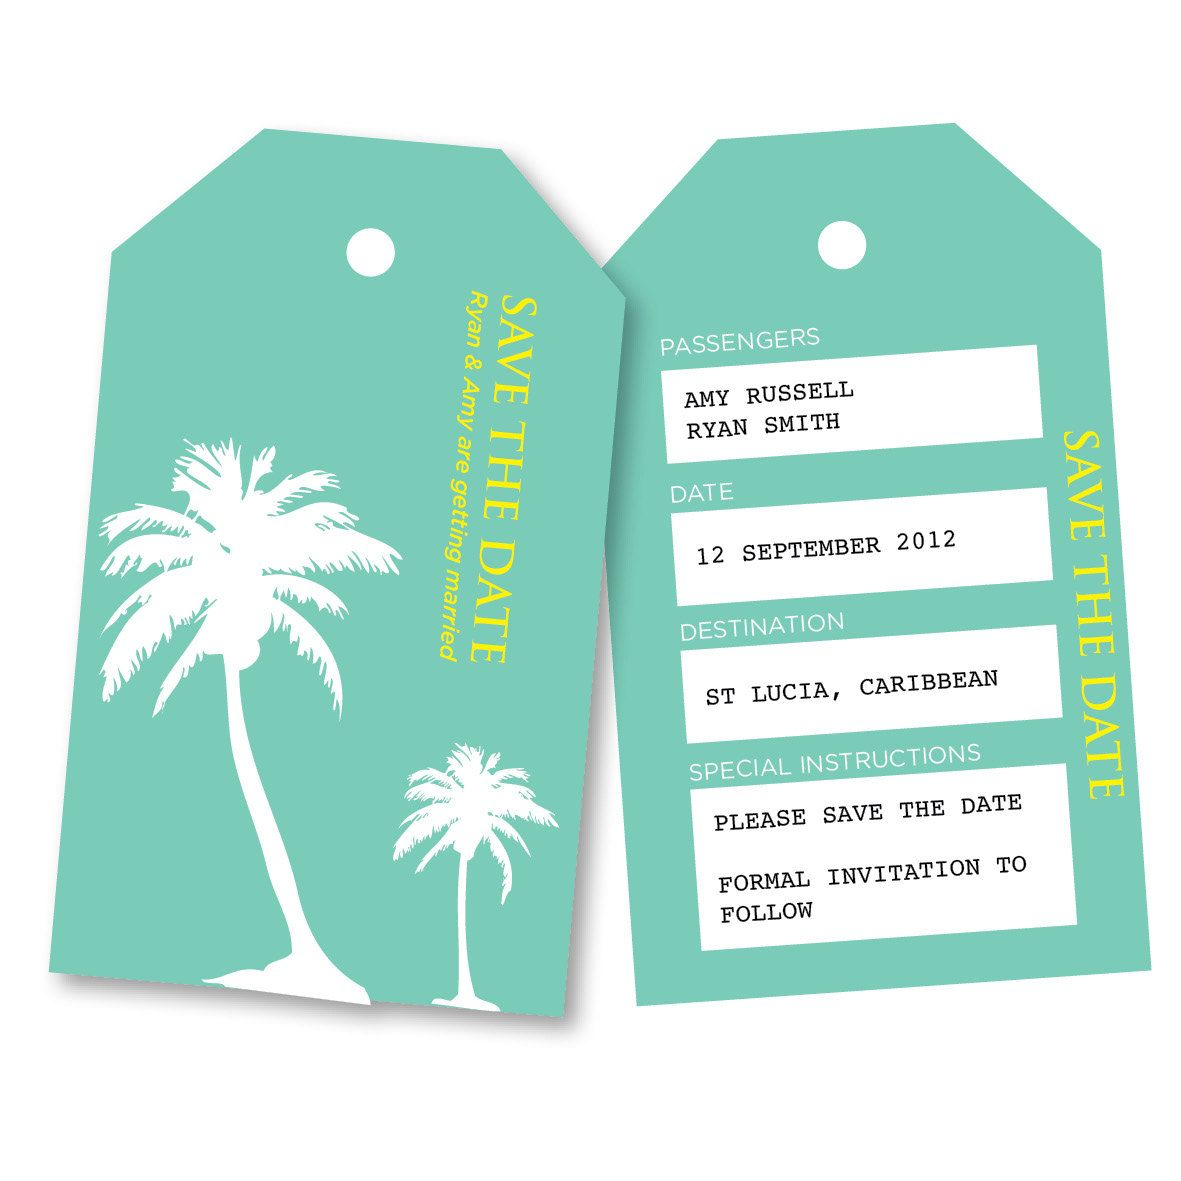 Printable any colour save the date overseas abroad wedding printable any colour save the date overseas abroad wedding invitation luggage tags 1000 monicamarmolfo Gallery